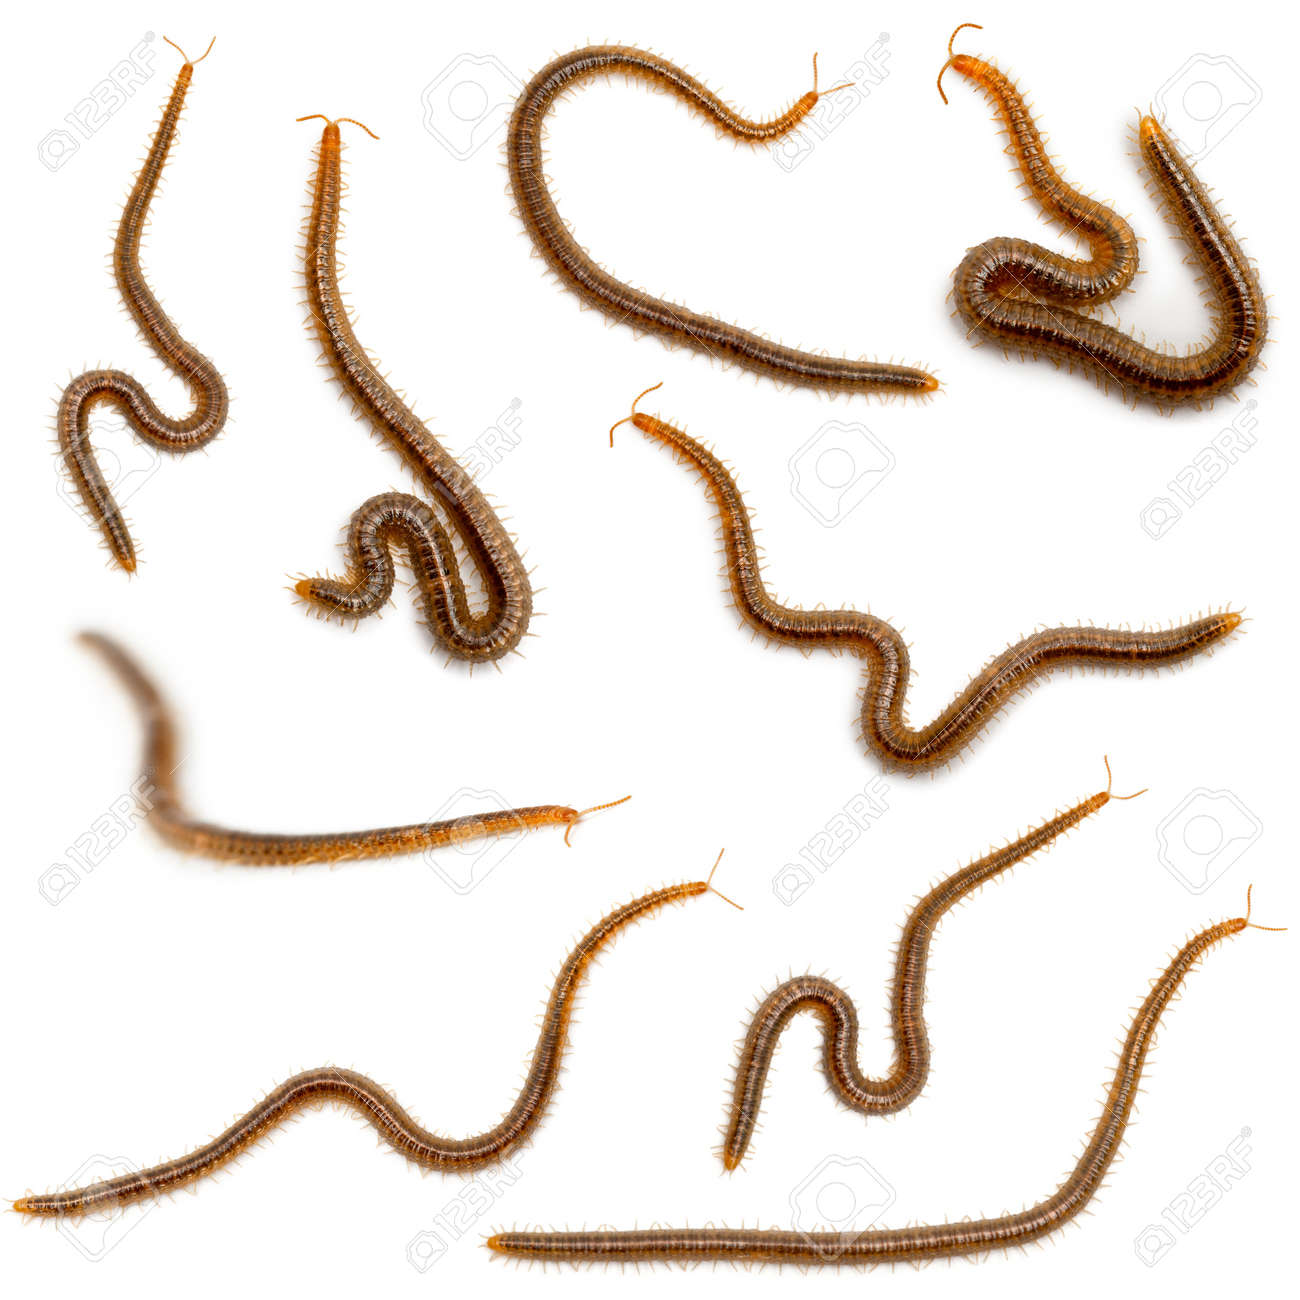 Collage of centipedes in front of white background Stock Photo - 11568256